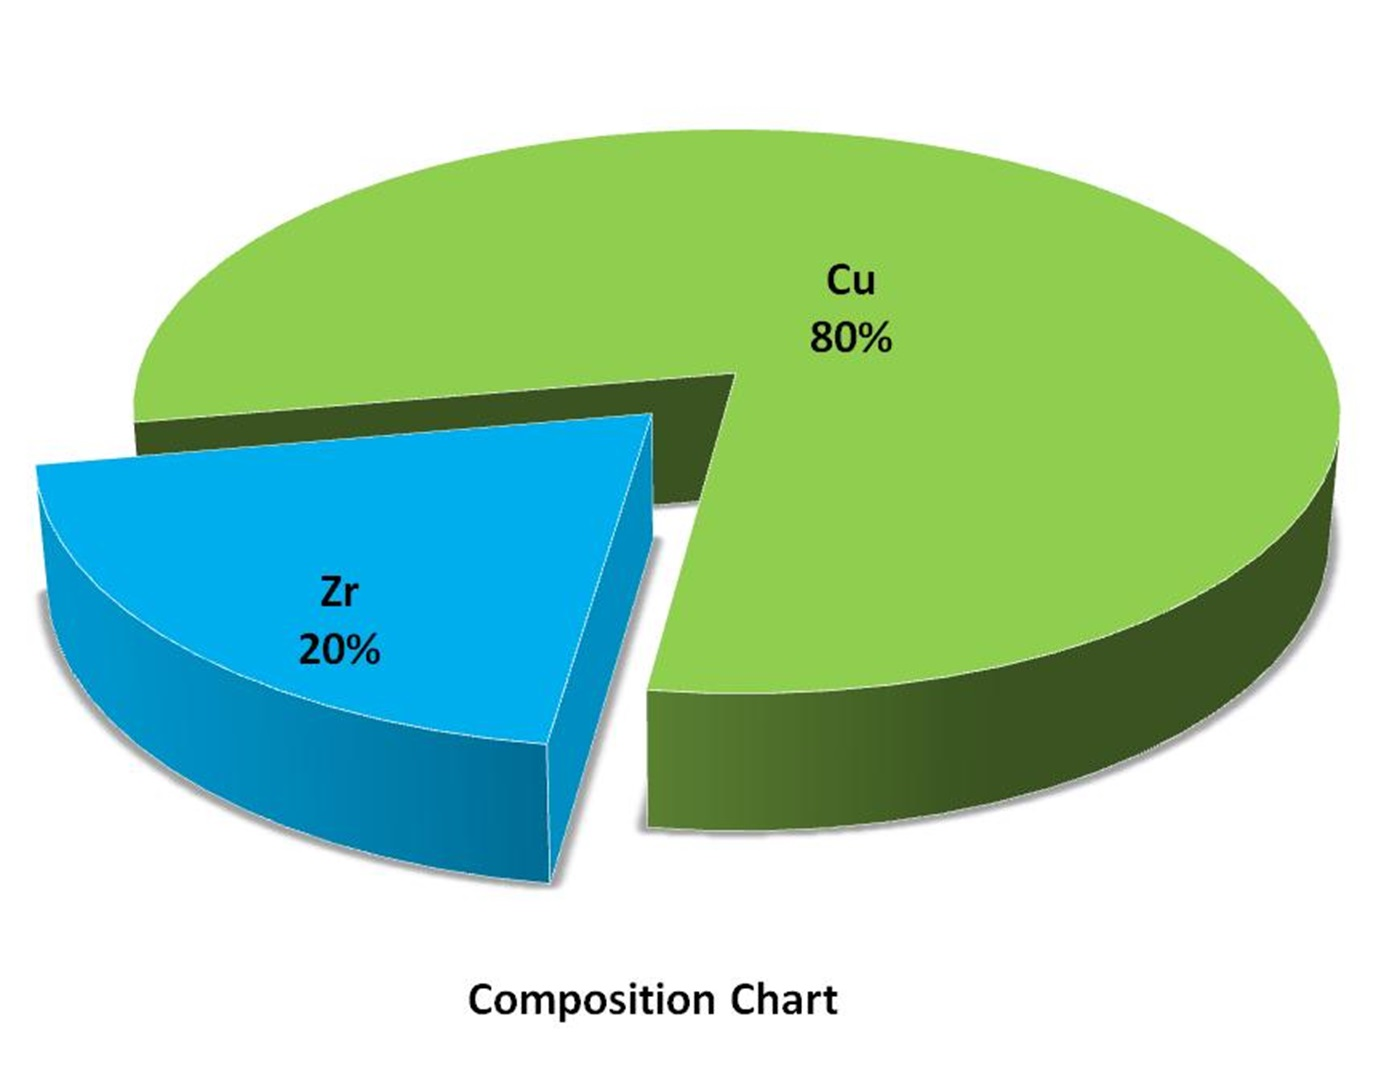 Composition Chart - Copper Zirconium Alloy